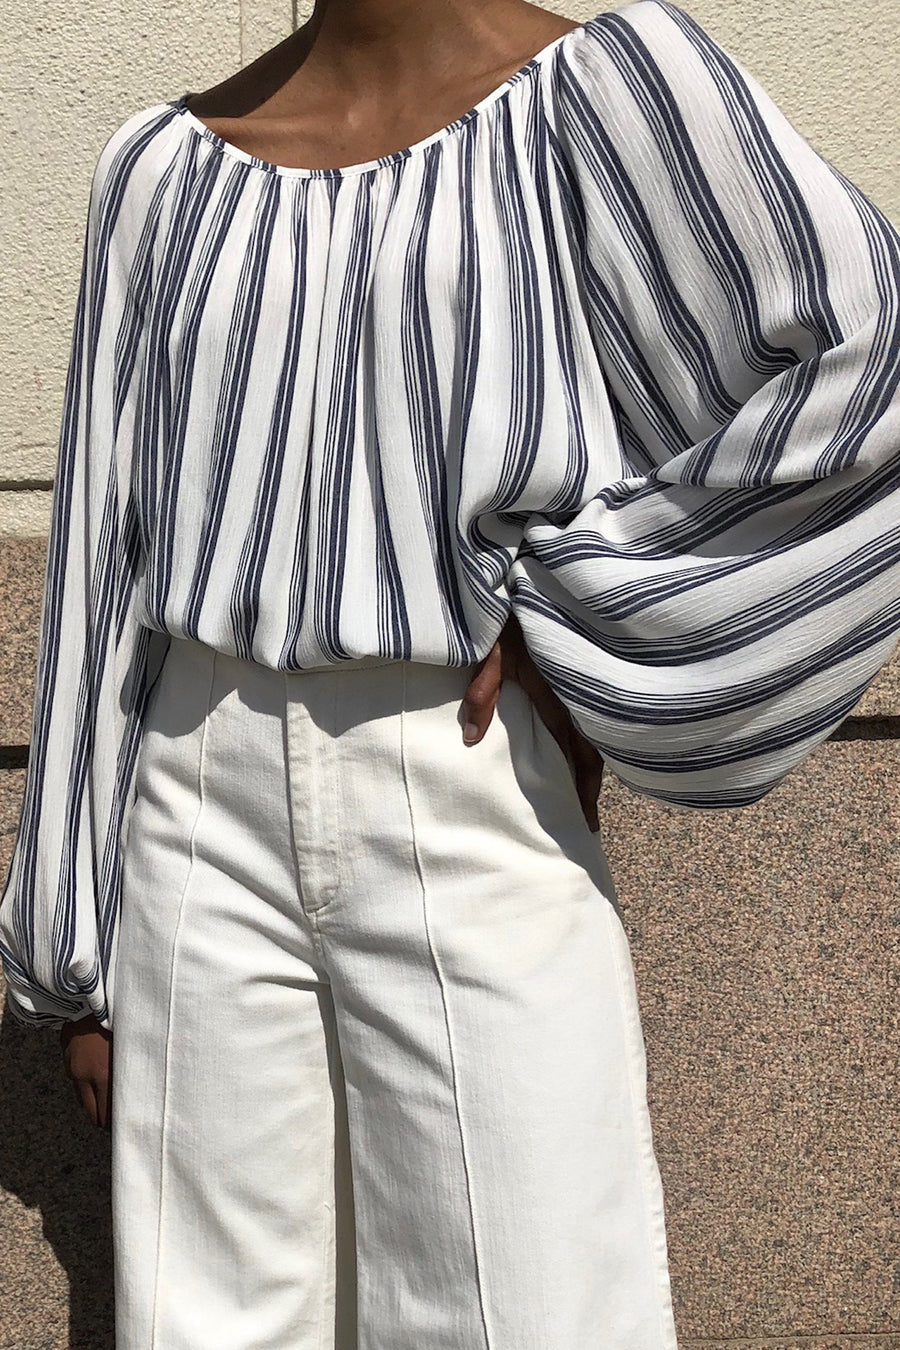 STADERA TOP - STRIPED Top Stylein